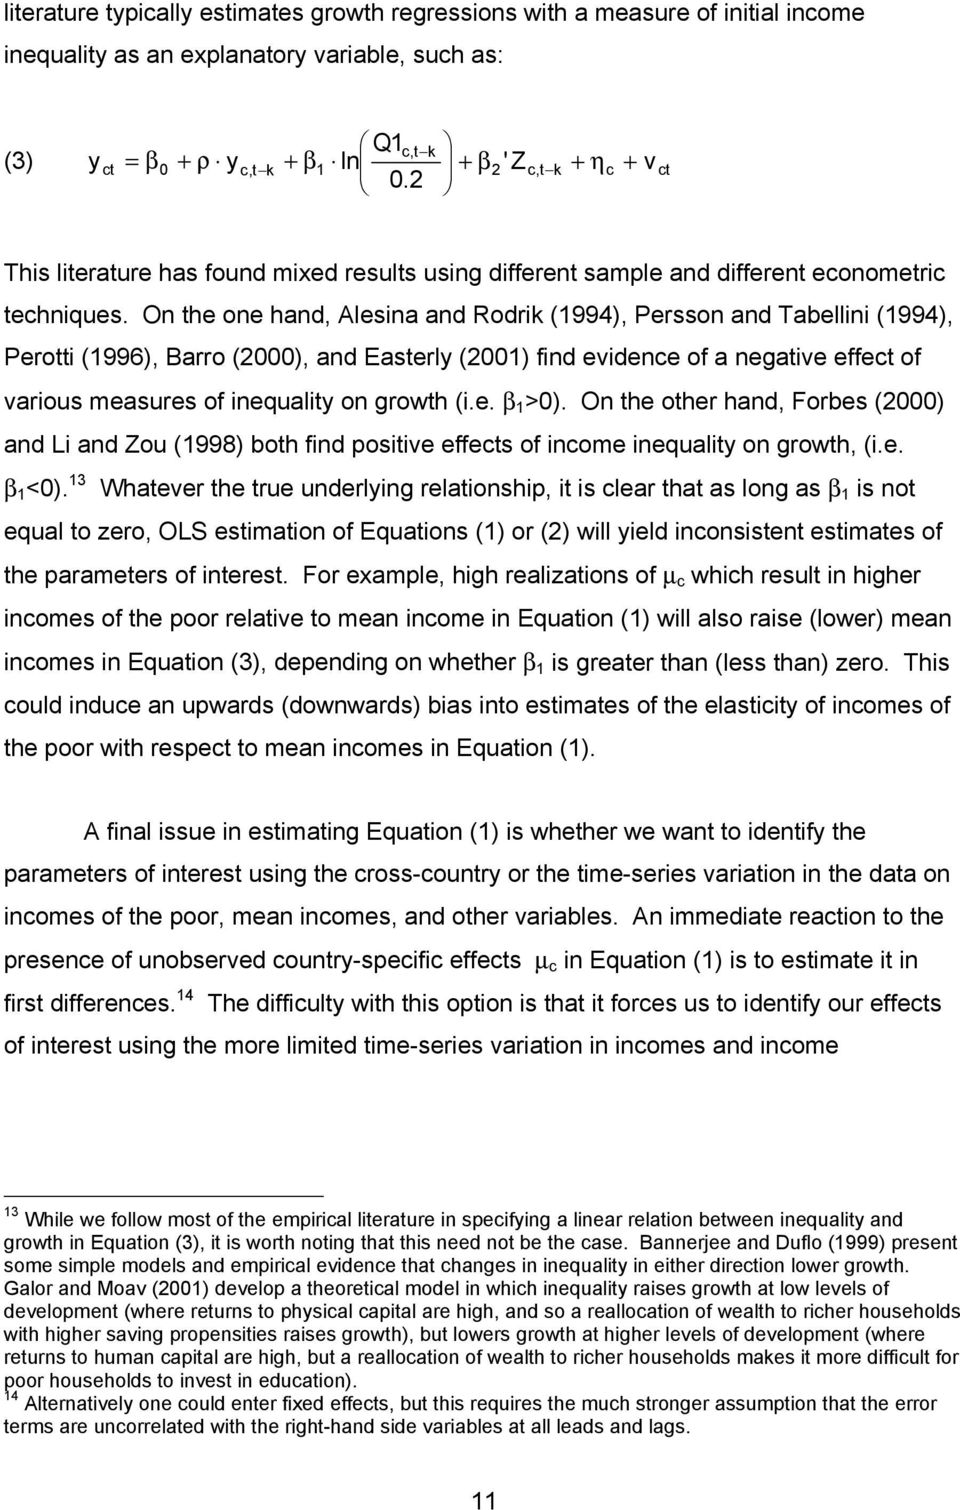 On the one hand, Alesina and Rodrik (1994), Persson and Tabellini (1994), Perotti (1996), Barro (2000), and Easterly (2001) find evidence of a negative effect of various measures of inequality on